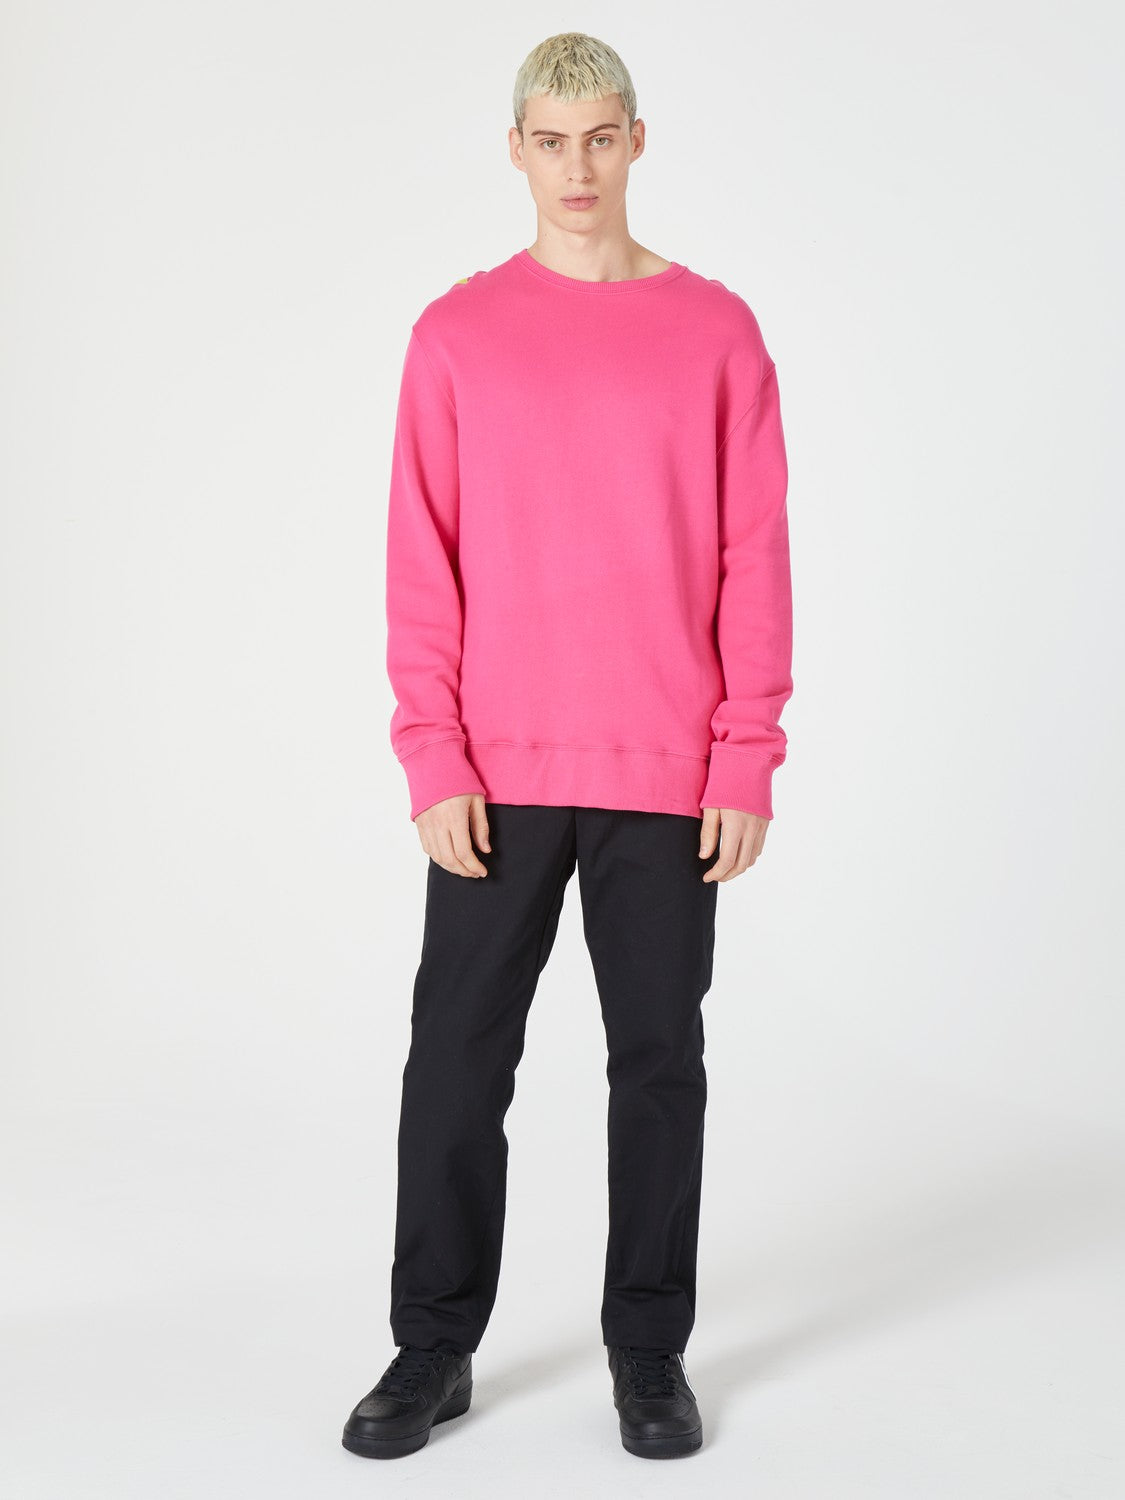 Beet Root Graphic long sleeve Sweatshirt Rochambeau